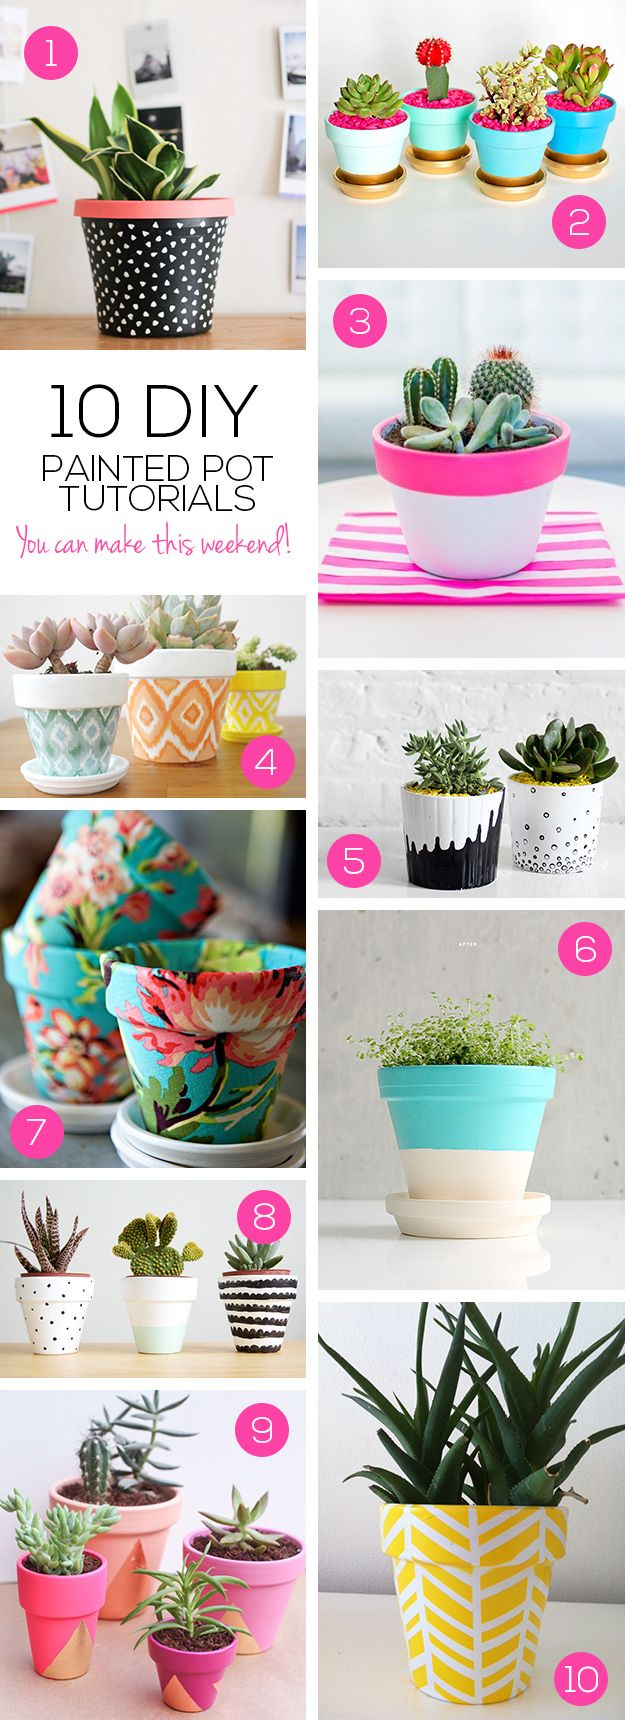 10 DIY Pretty Plant Pots